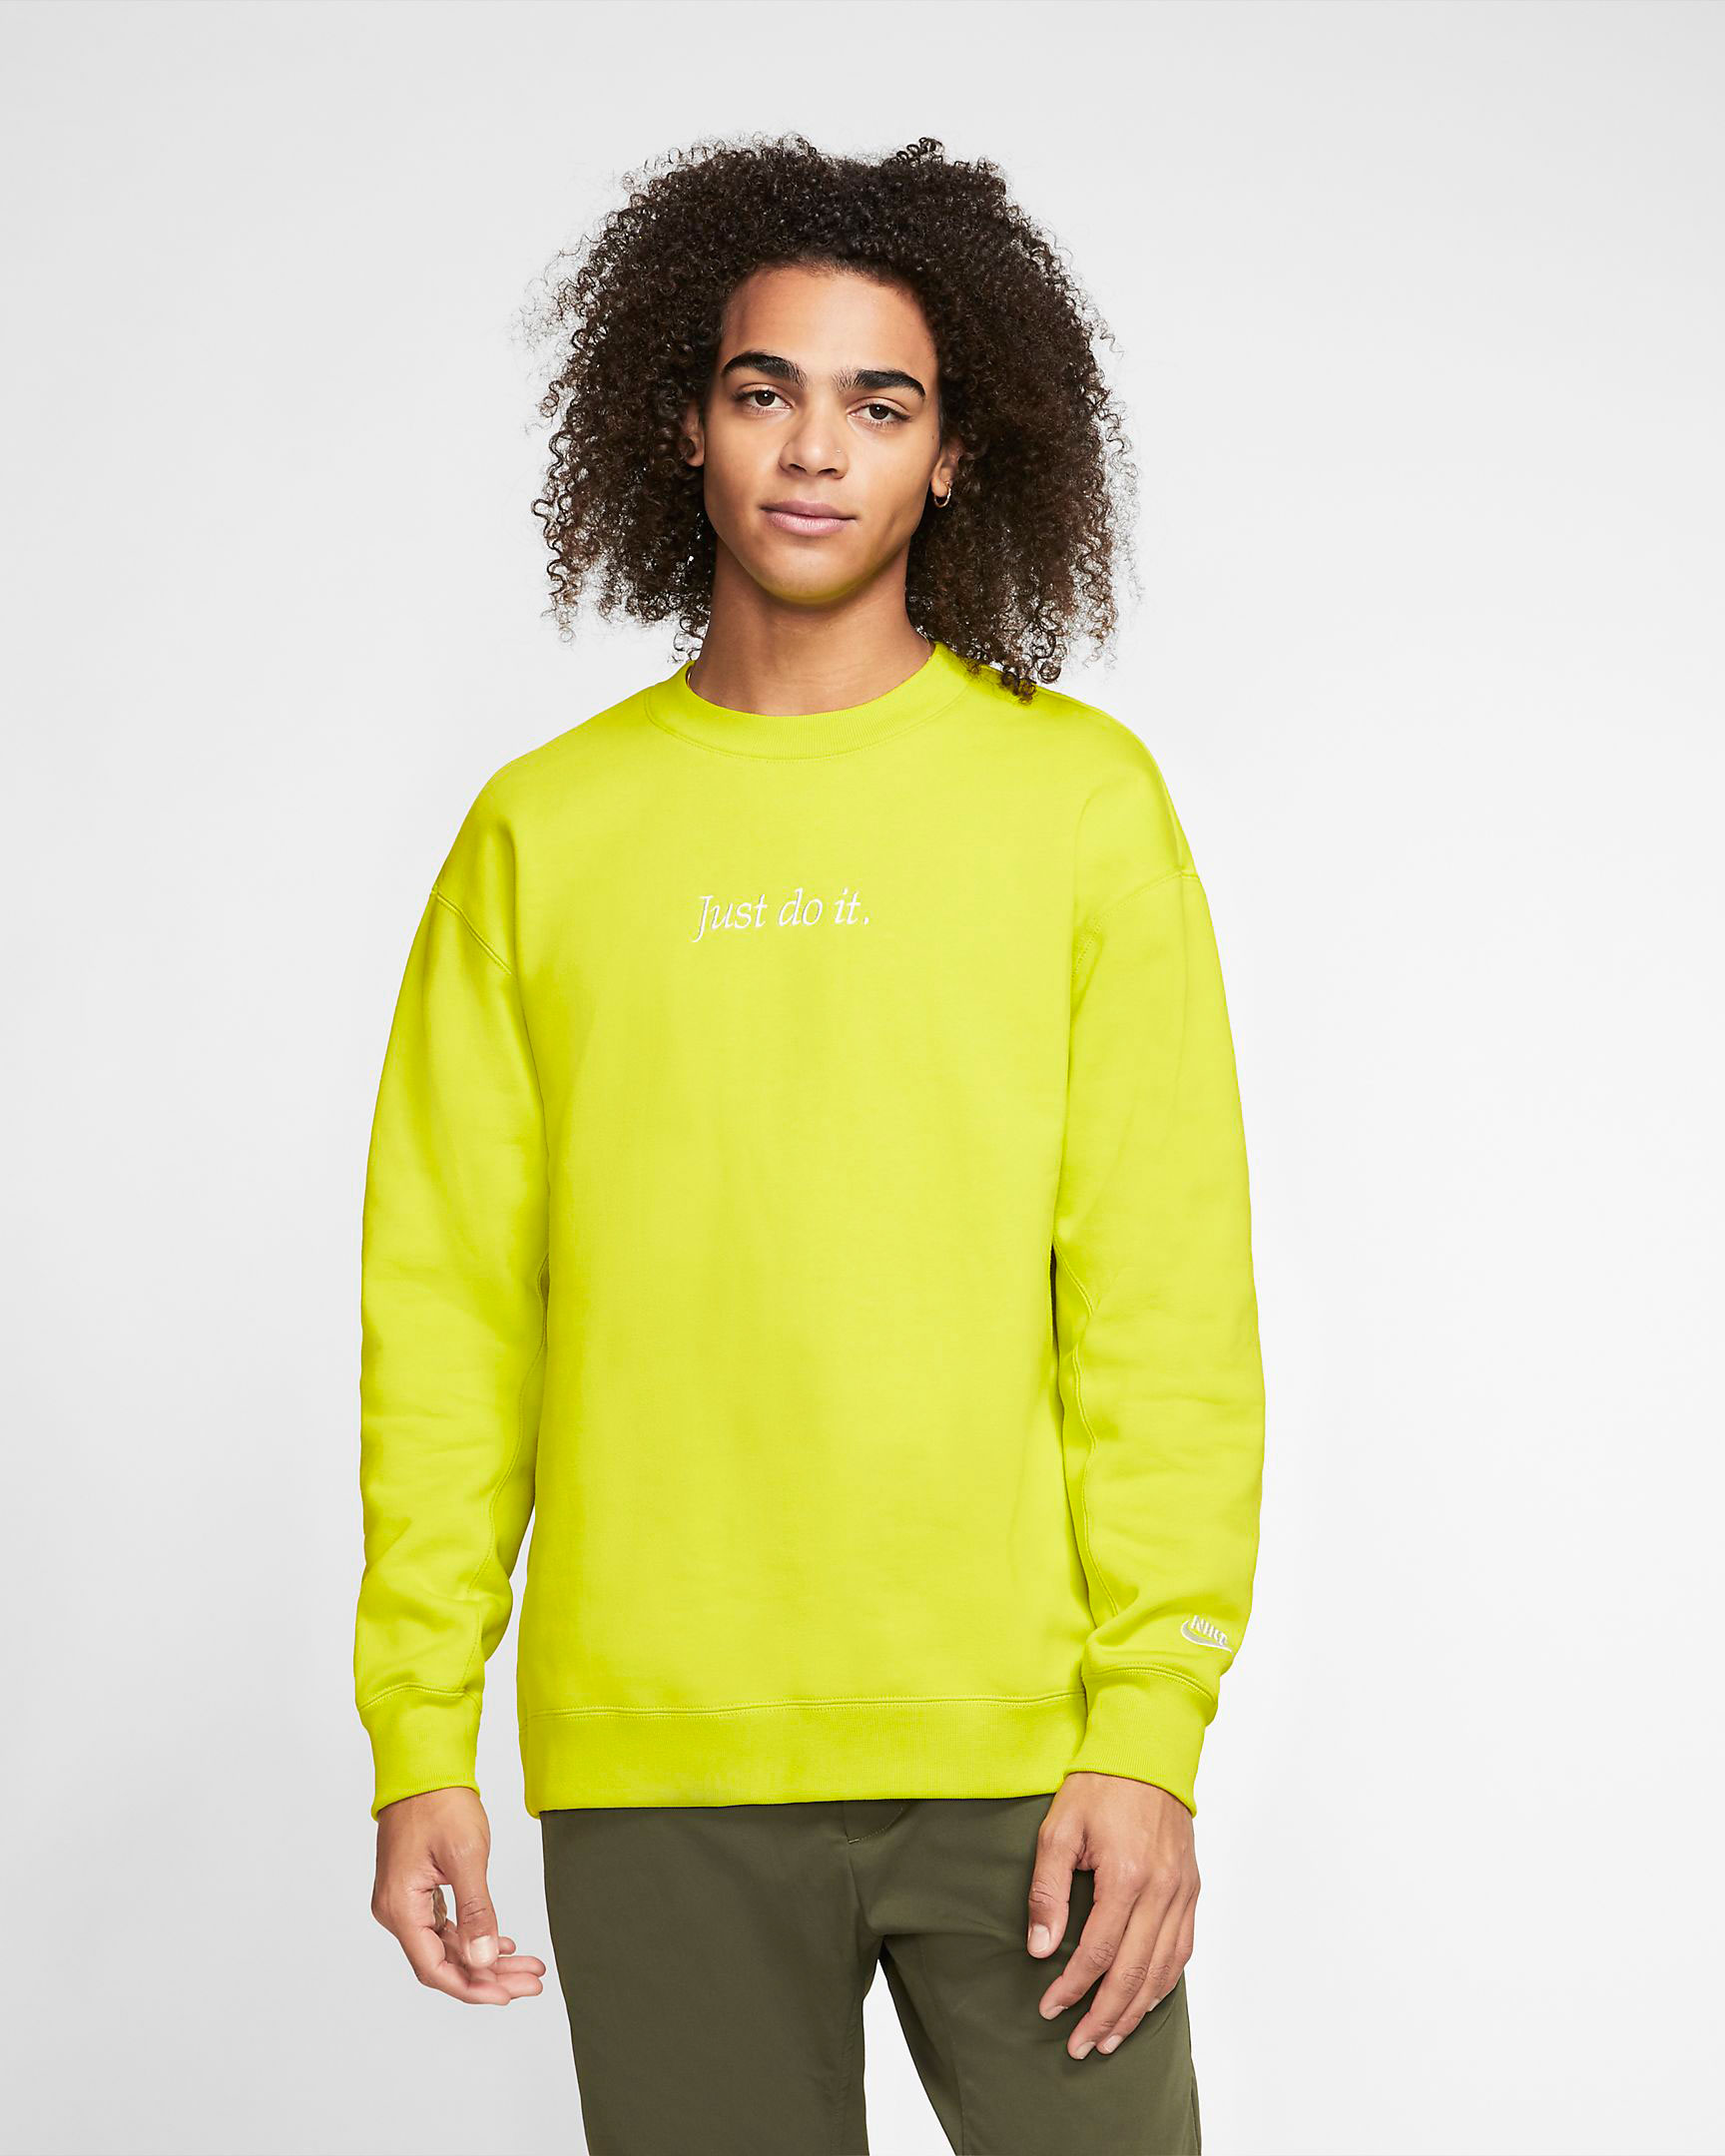 nike-sportswear-jdi-just-do-it-crew-sweatshirt-volt